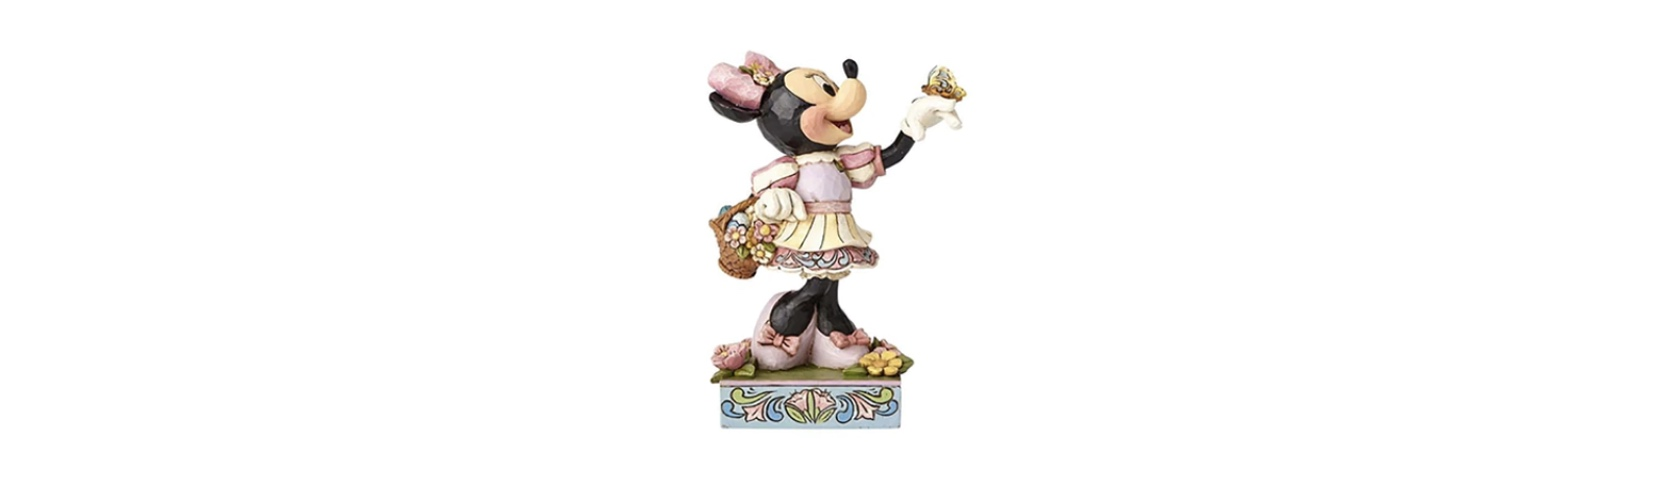 disney-minnie-mouse